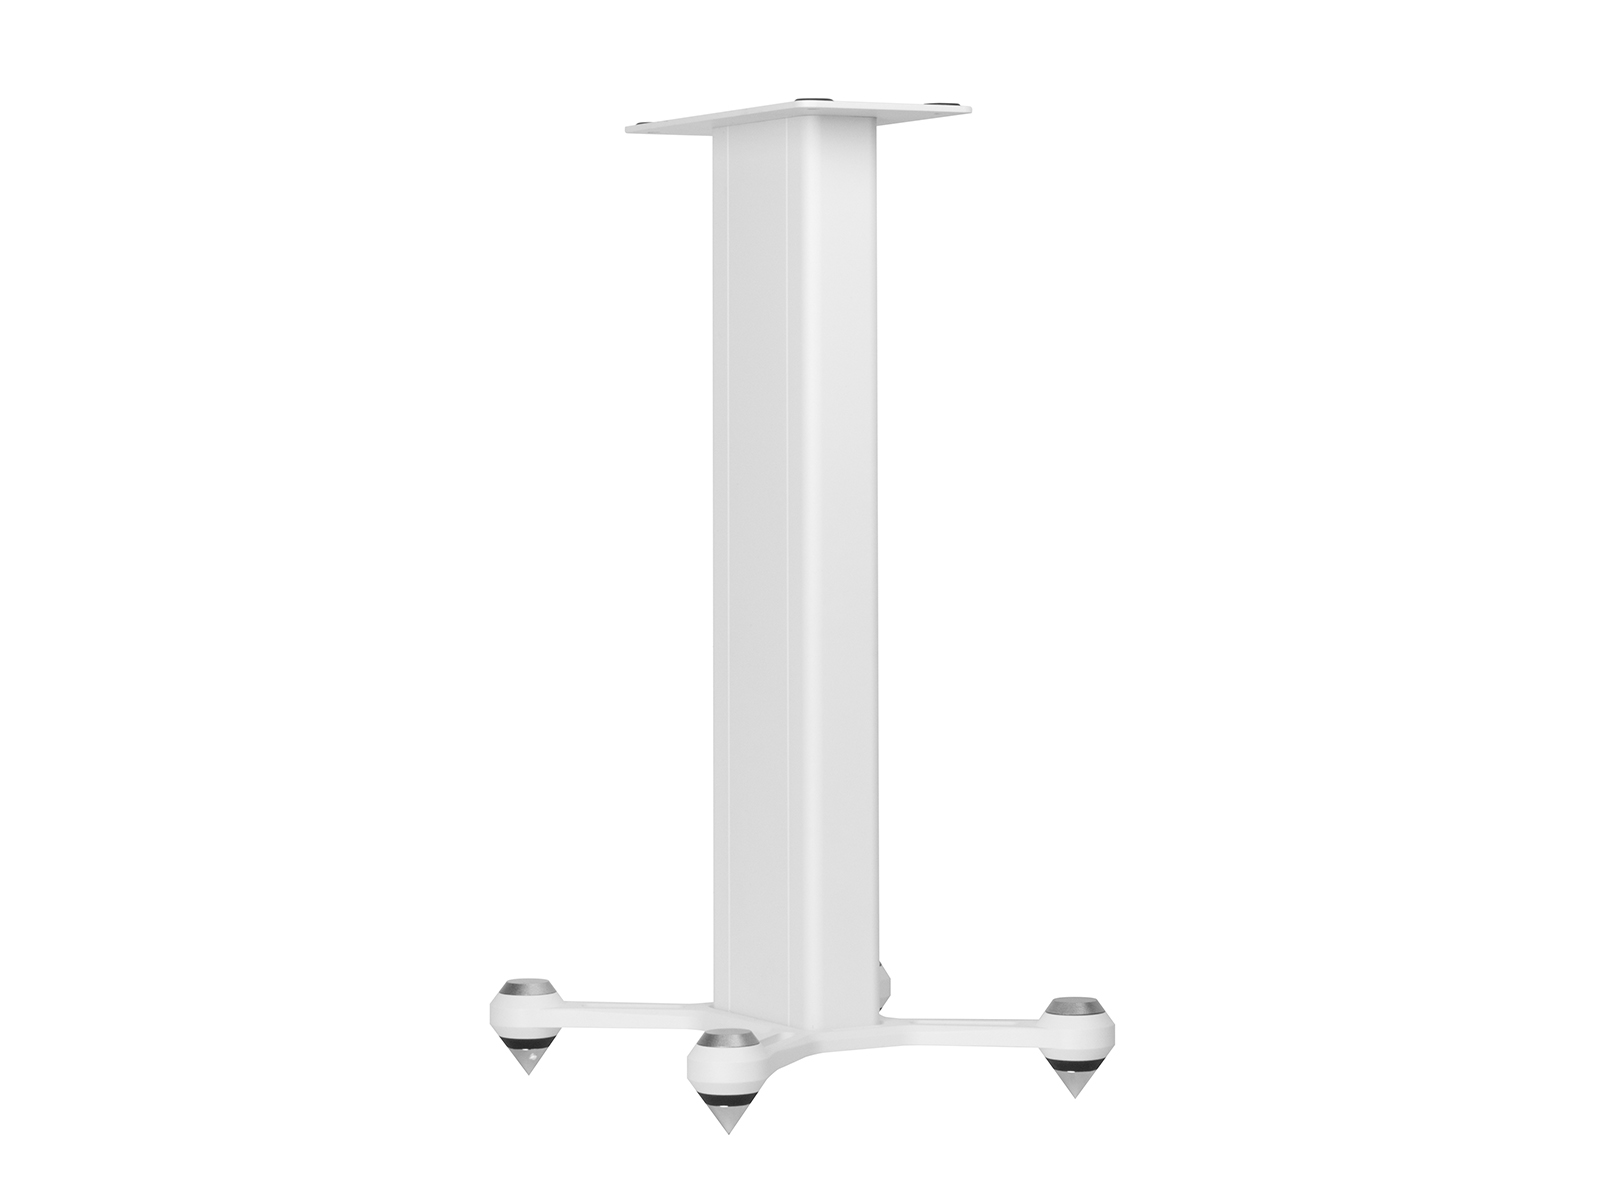 Speaker STAND, front view in a white finish.